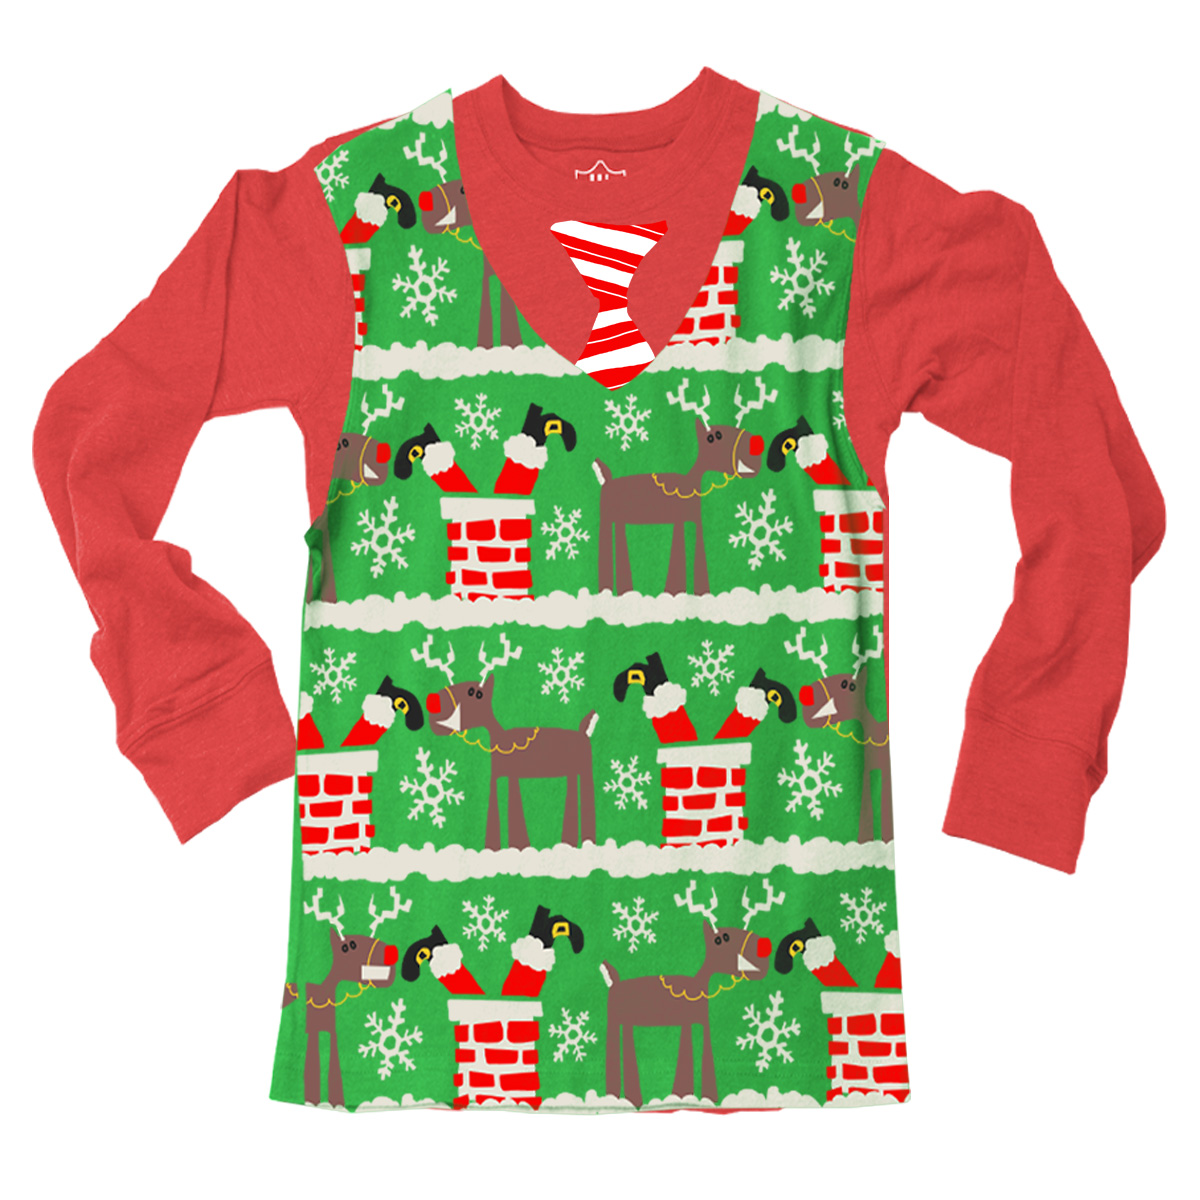 Wes & Willy Boys Ugly Christmas Sweater Vest Shirt